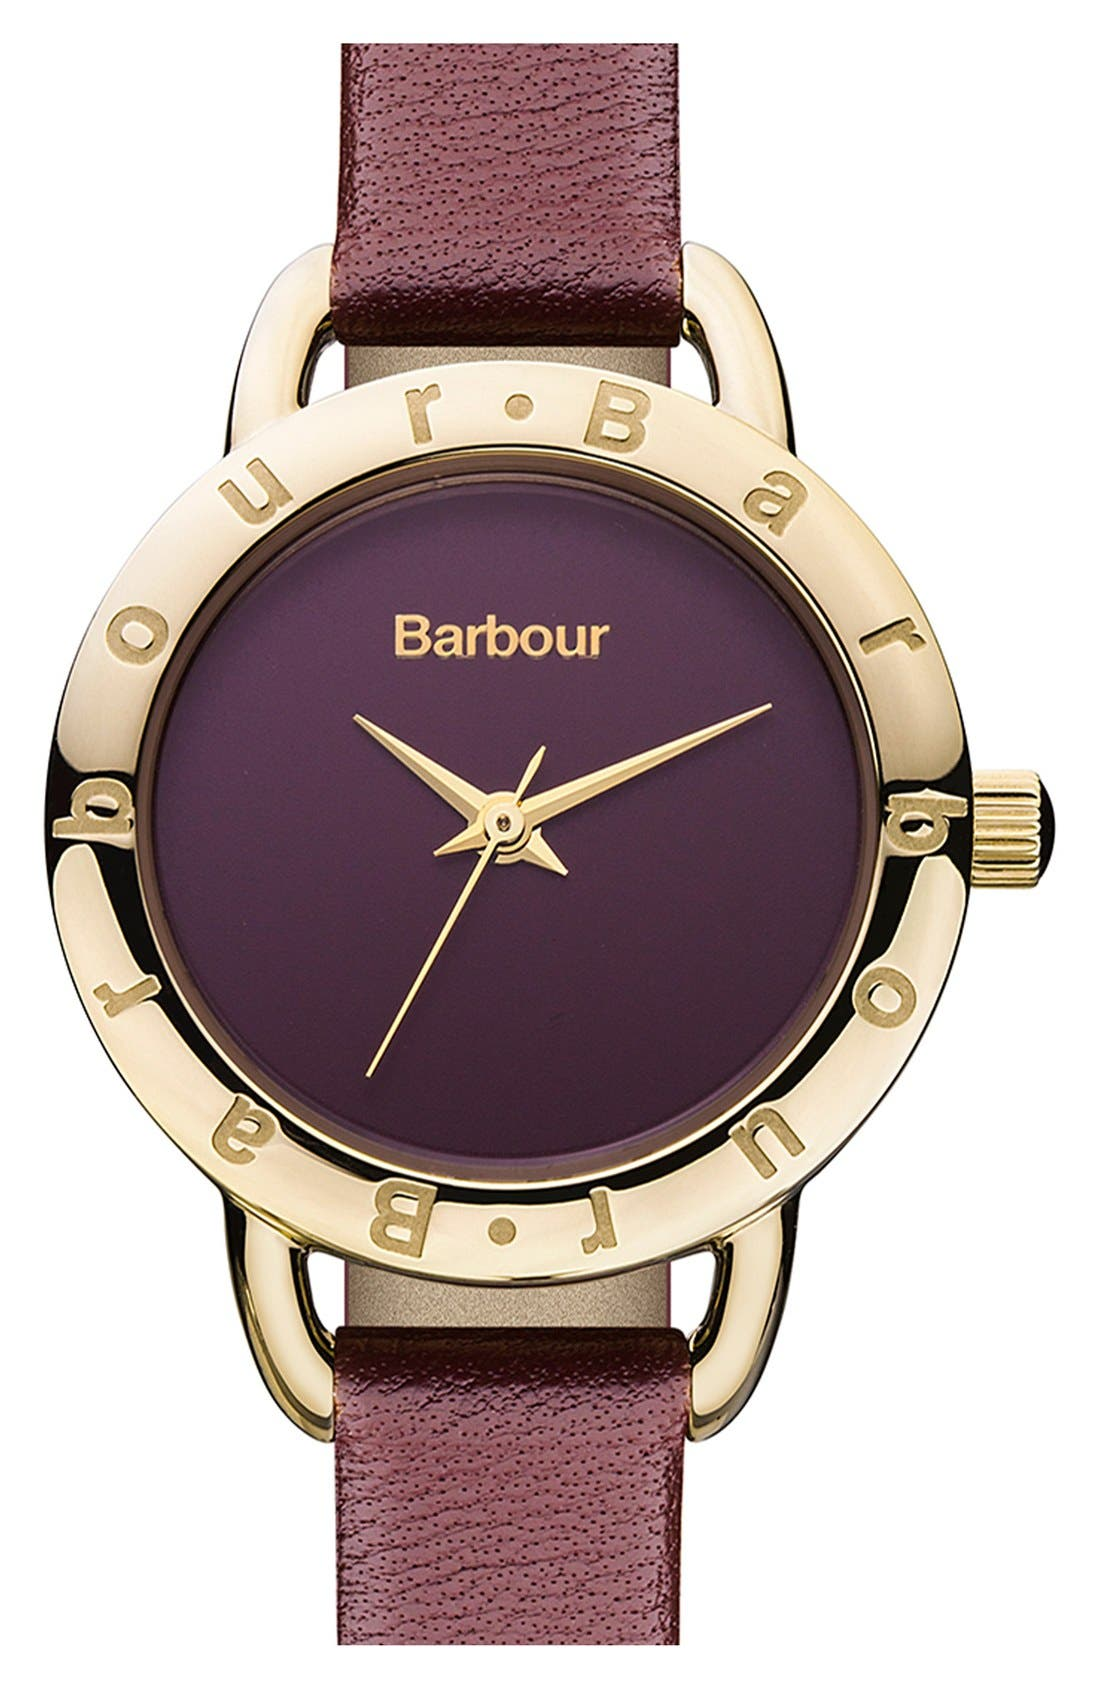 Main Image - Barbour 'Heritage' Leather Strap Watch, 26mm